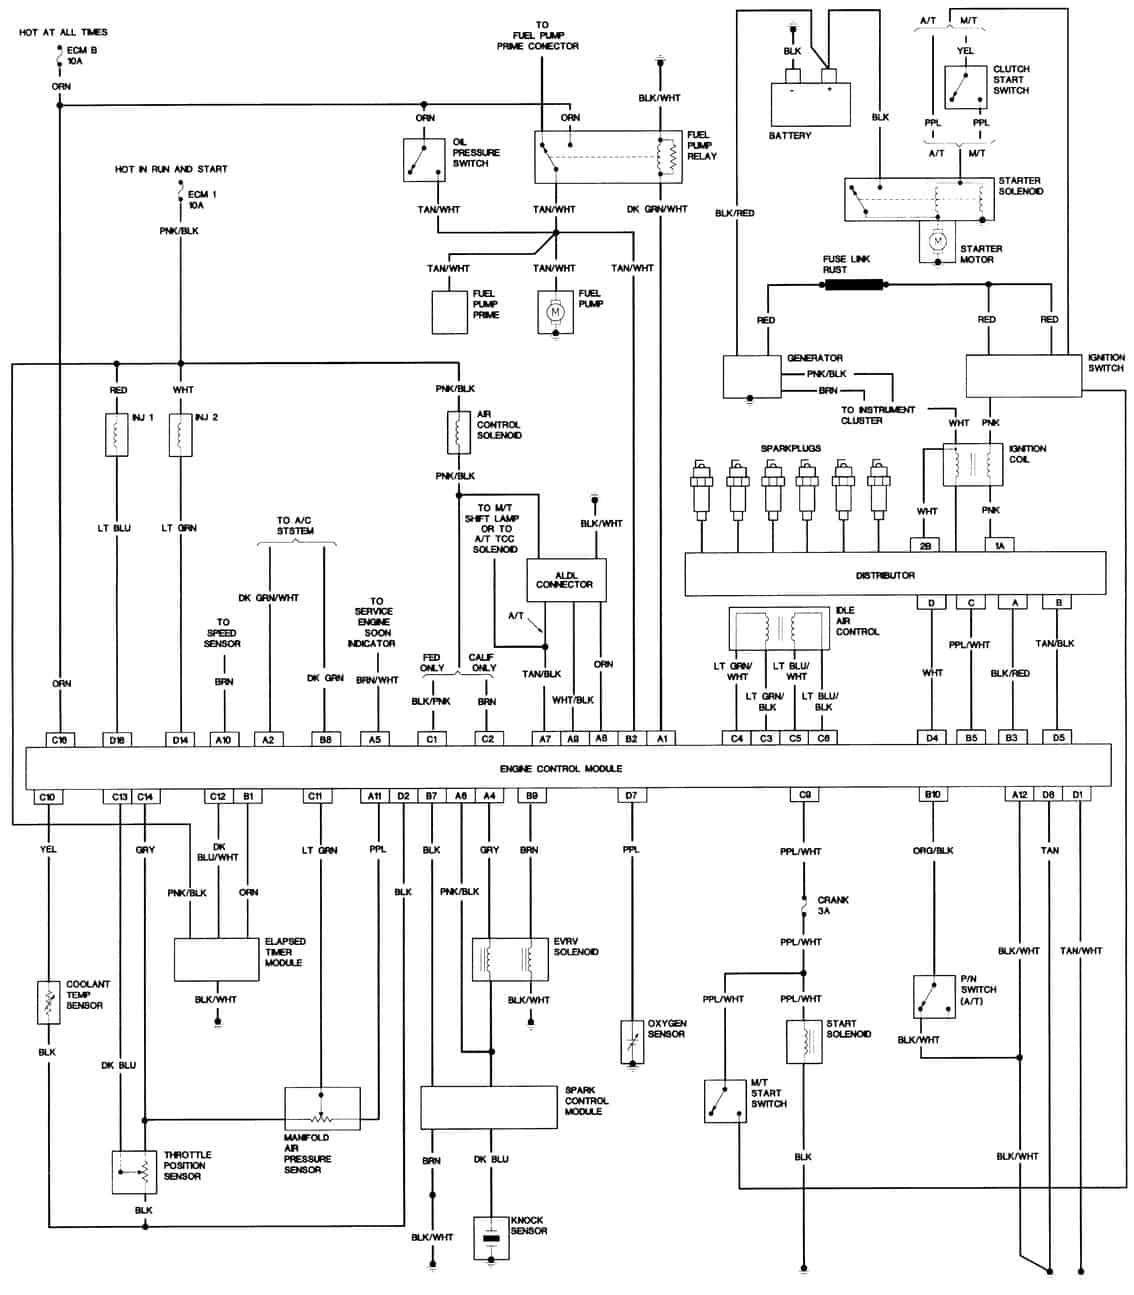 DIAGRAM] 94 Chevy S10 Wiring Diagram FULL Version HD Quality Wiring Diagram  - SWOP.ARCIERIARCOBALENO.ITDiagram Database